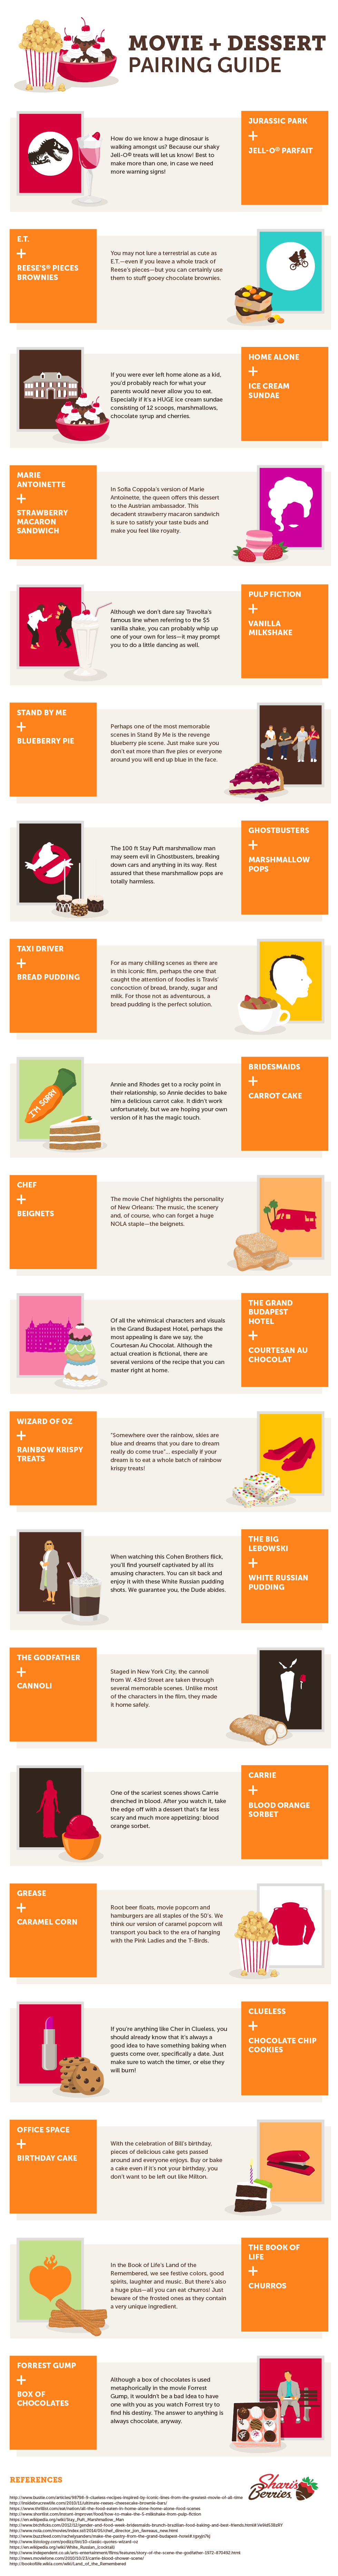 Movie and Dessert Pairing Guide